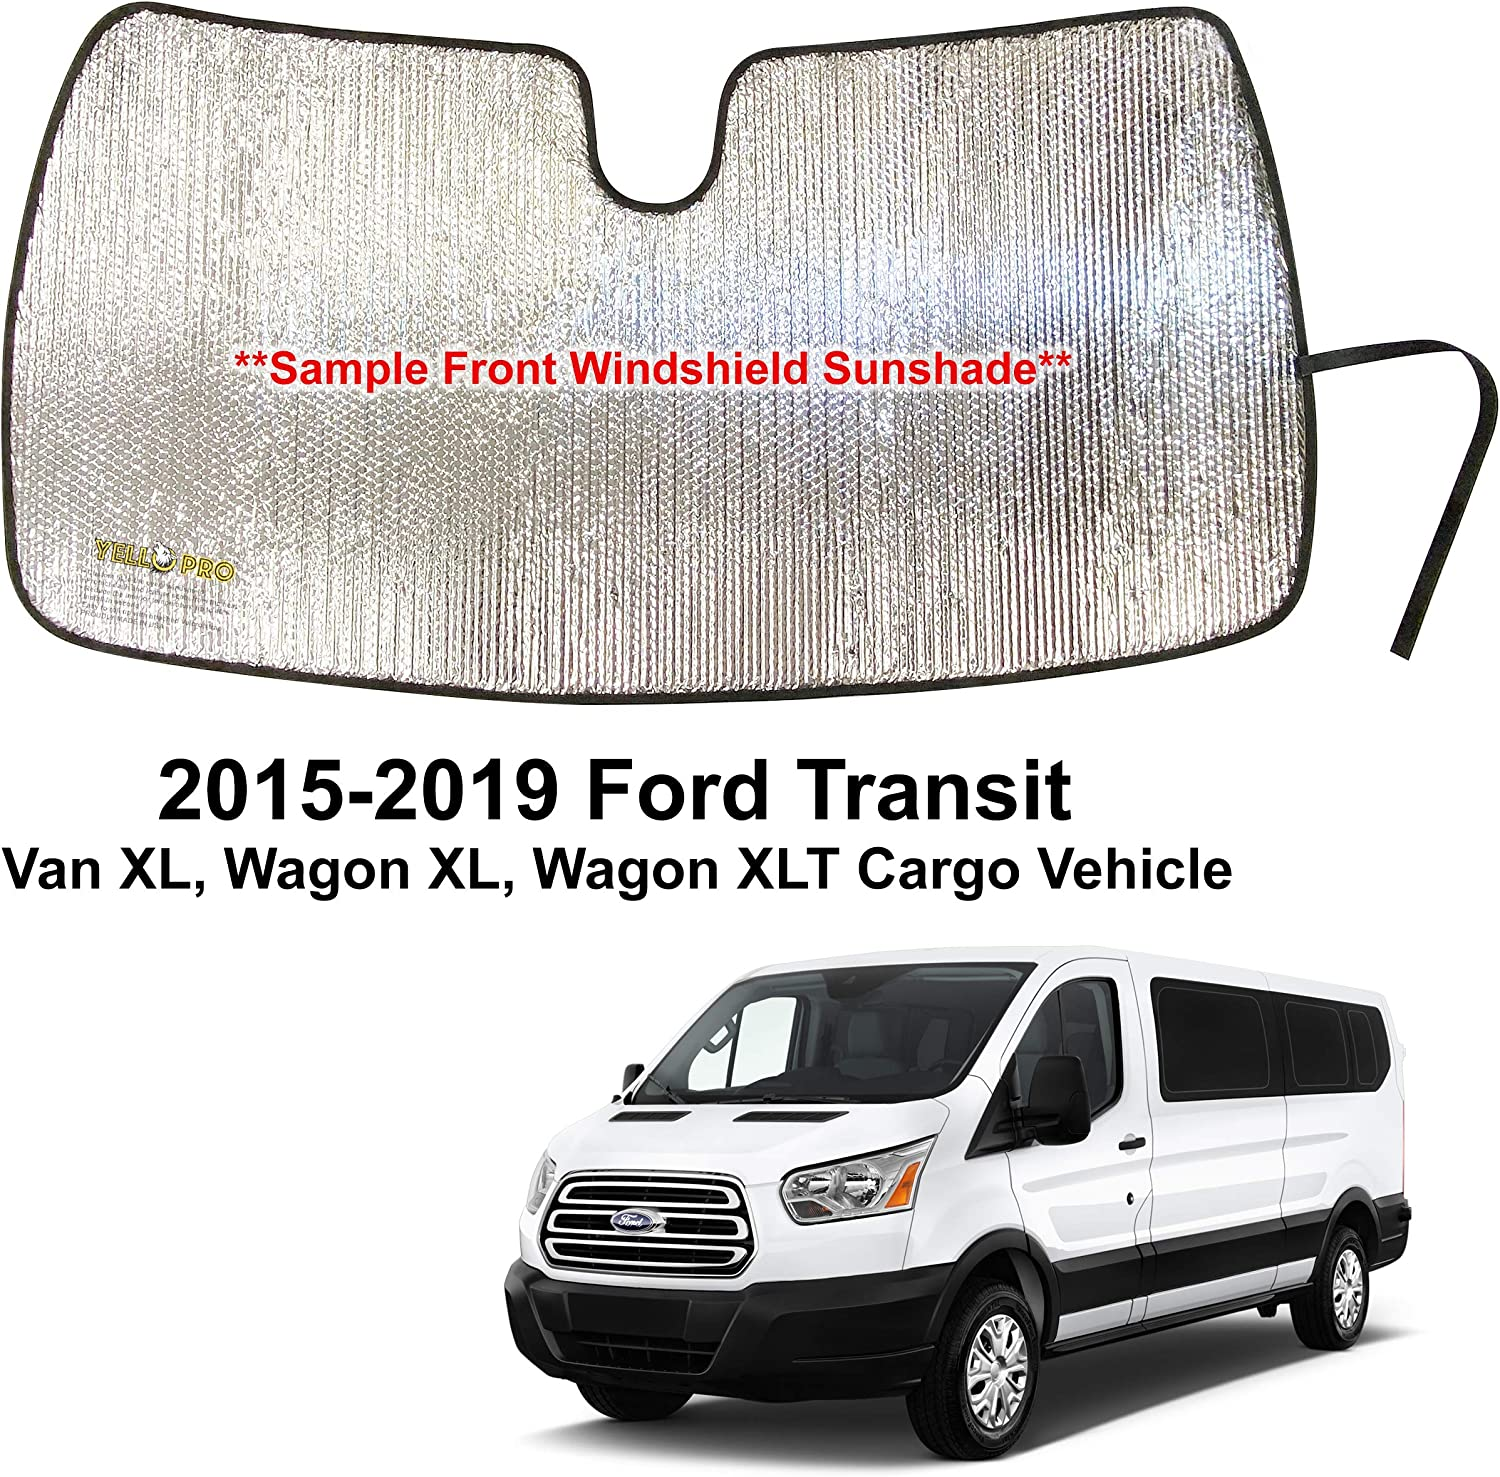 YelloPro Custom Fit Automotive Reflective Front Windshield Sunshade Accessories UV Reflector Sun Protection for 2015 2016 2017 2018 2019 Ford Transit Van XL, Wagon XL, Wagon XLT Cargo Vehicle